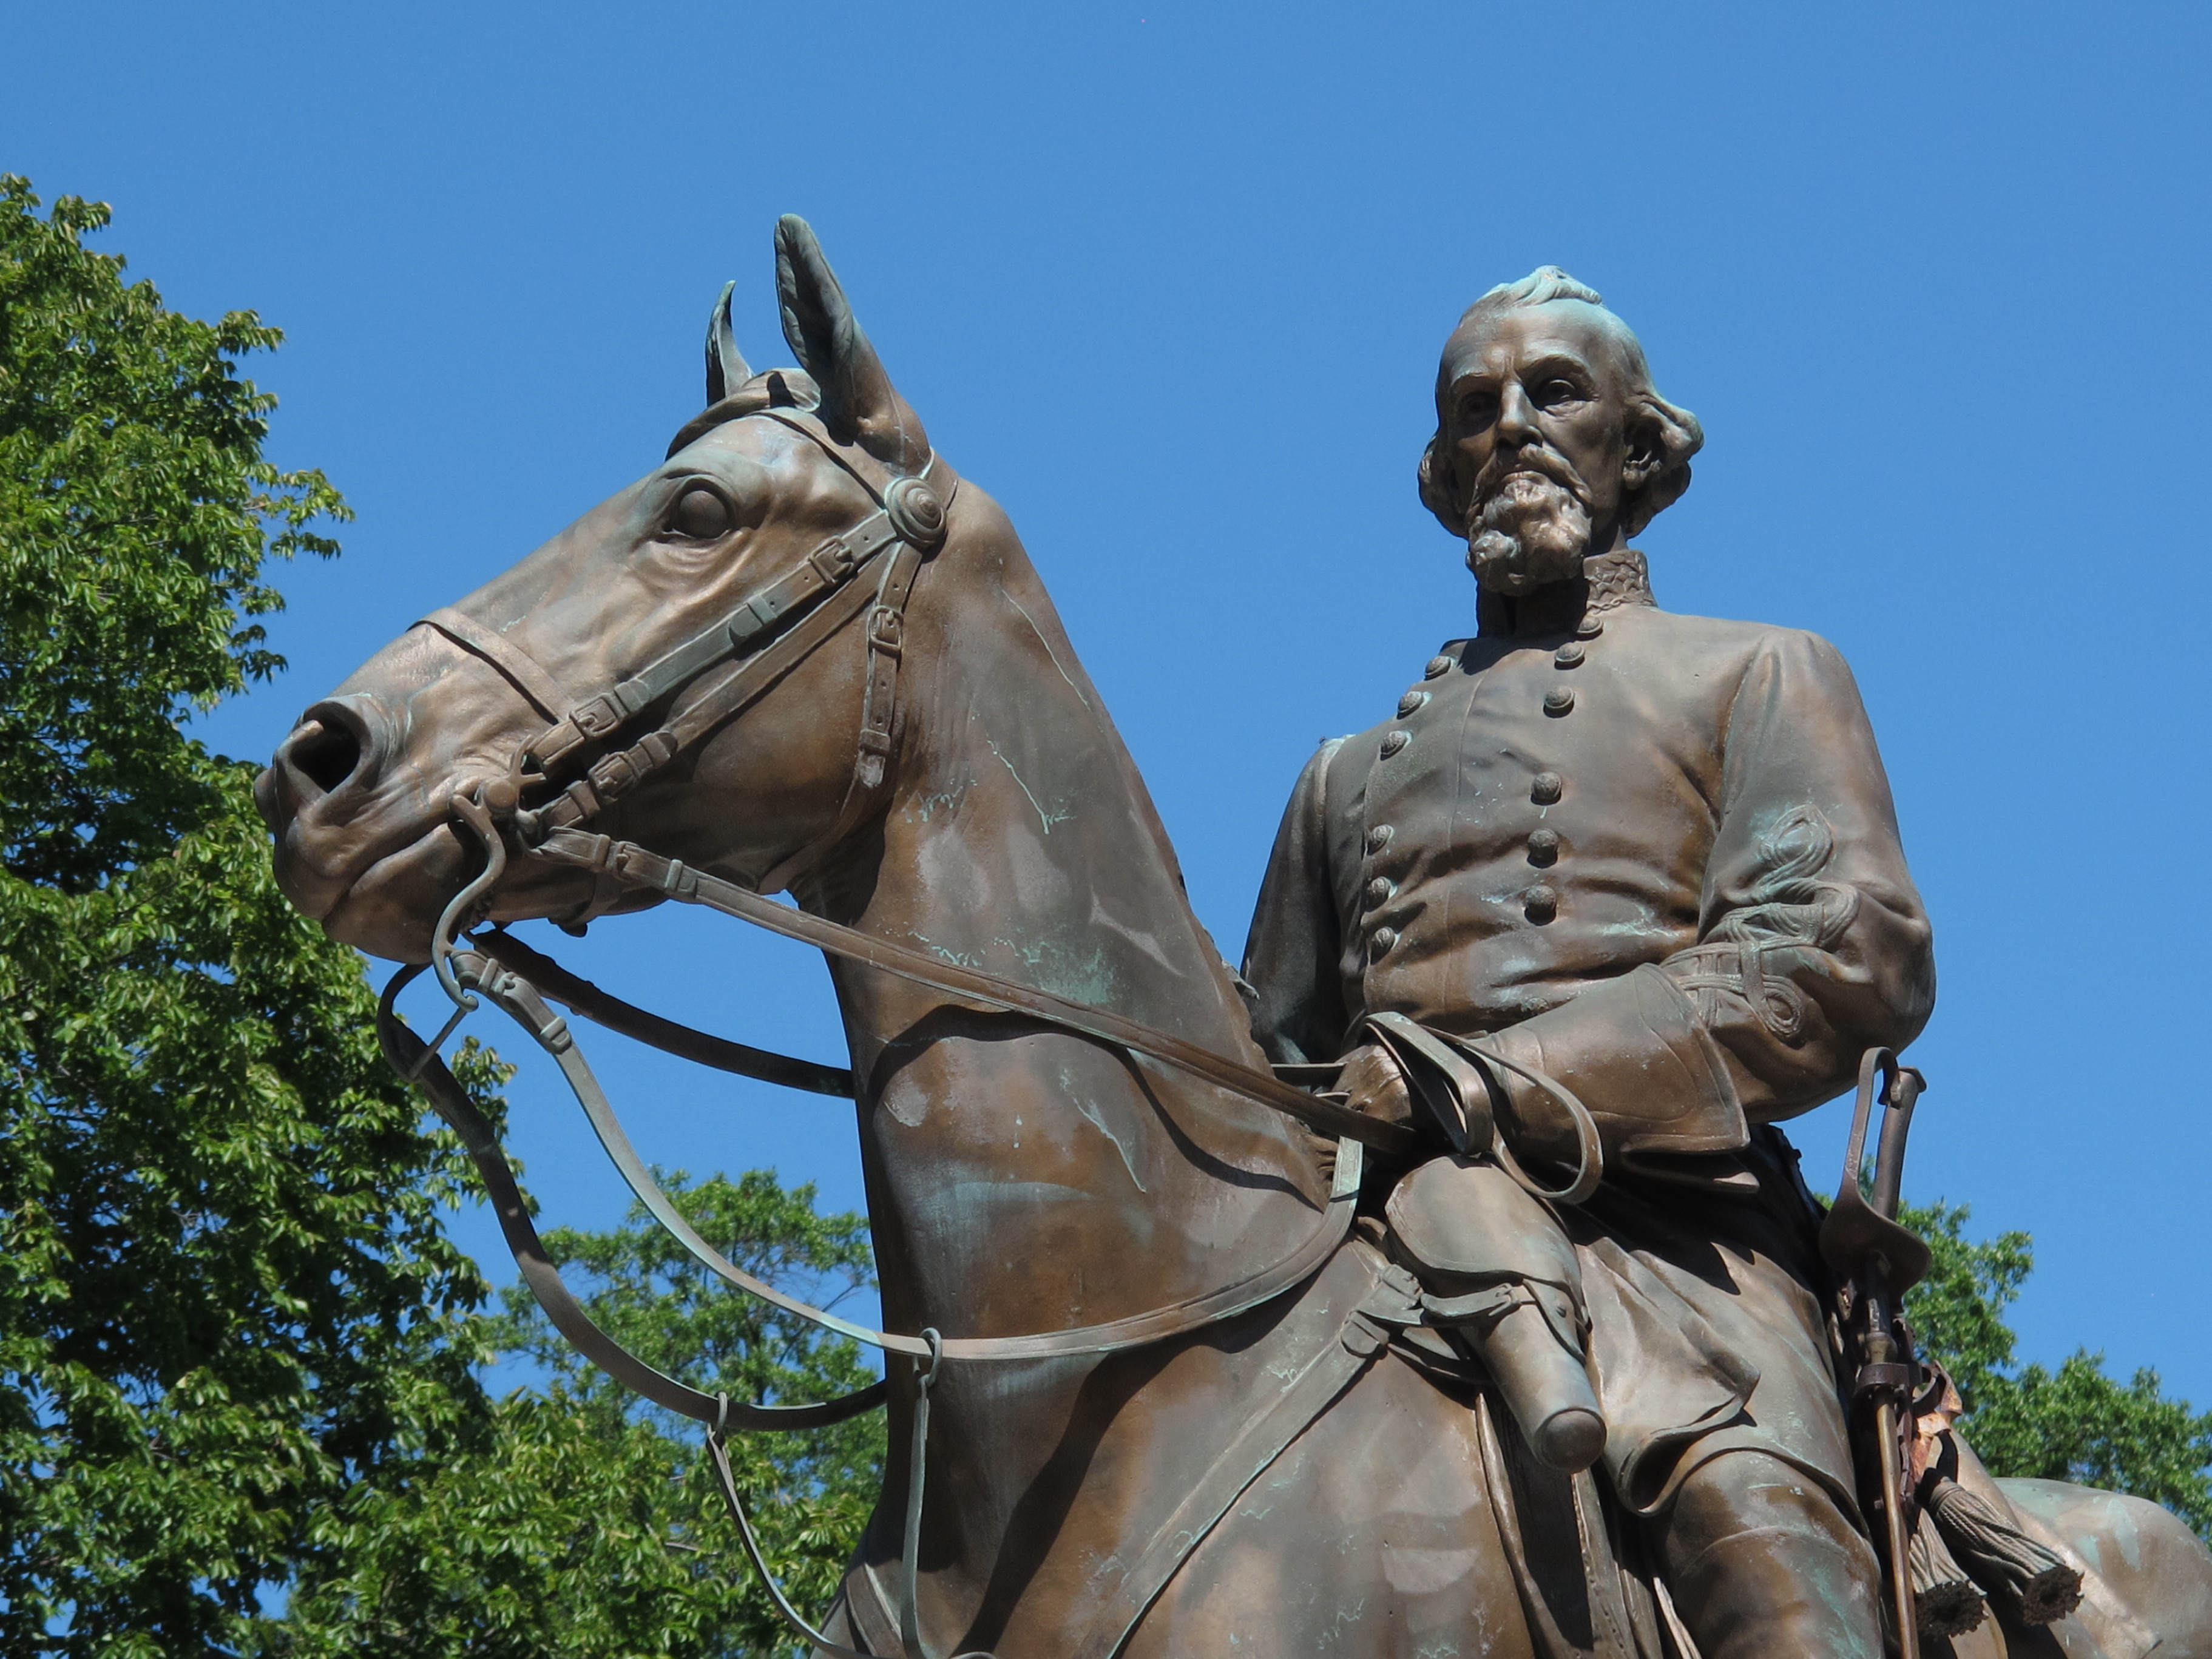 Tennessee Strips $250,000 From Memphis As Payback For Removing Confederate Statues